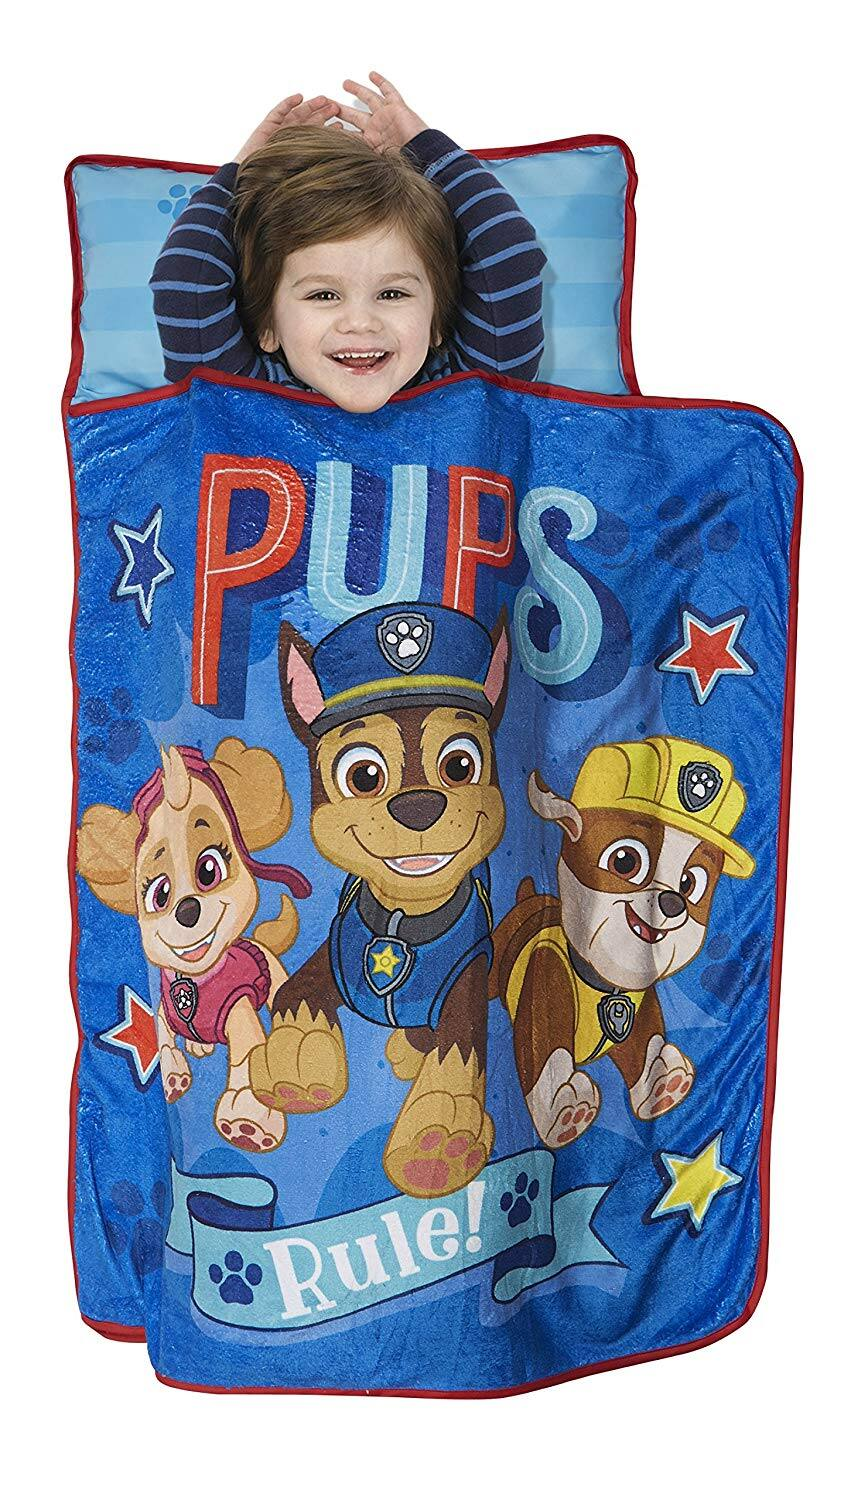 Paw Patrol Pups Rule Toddler Nap Mat w/ Attached Pillow & Blanket $8.71 - Amazon / Target